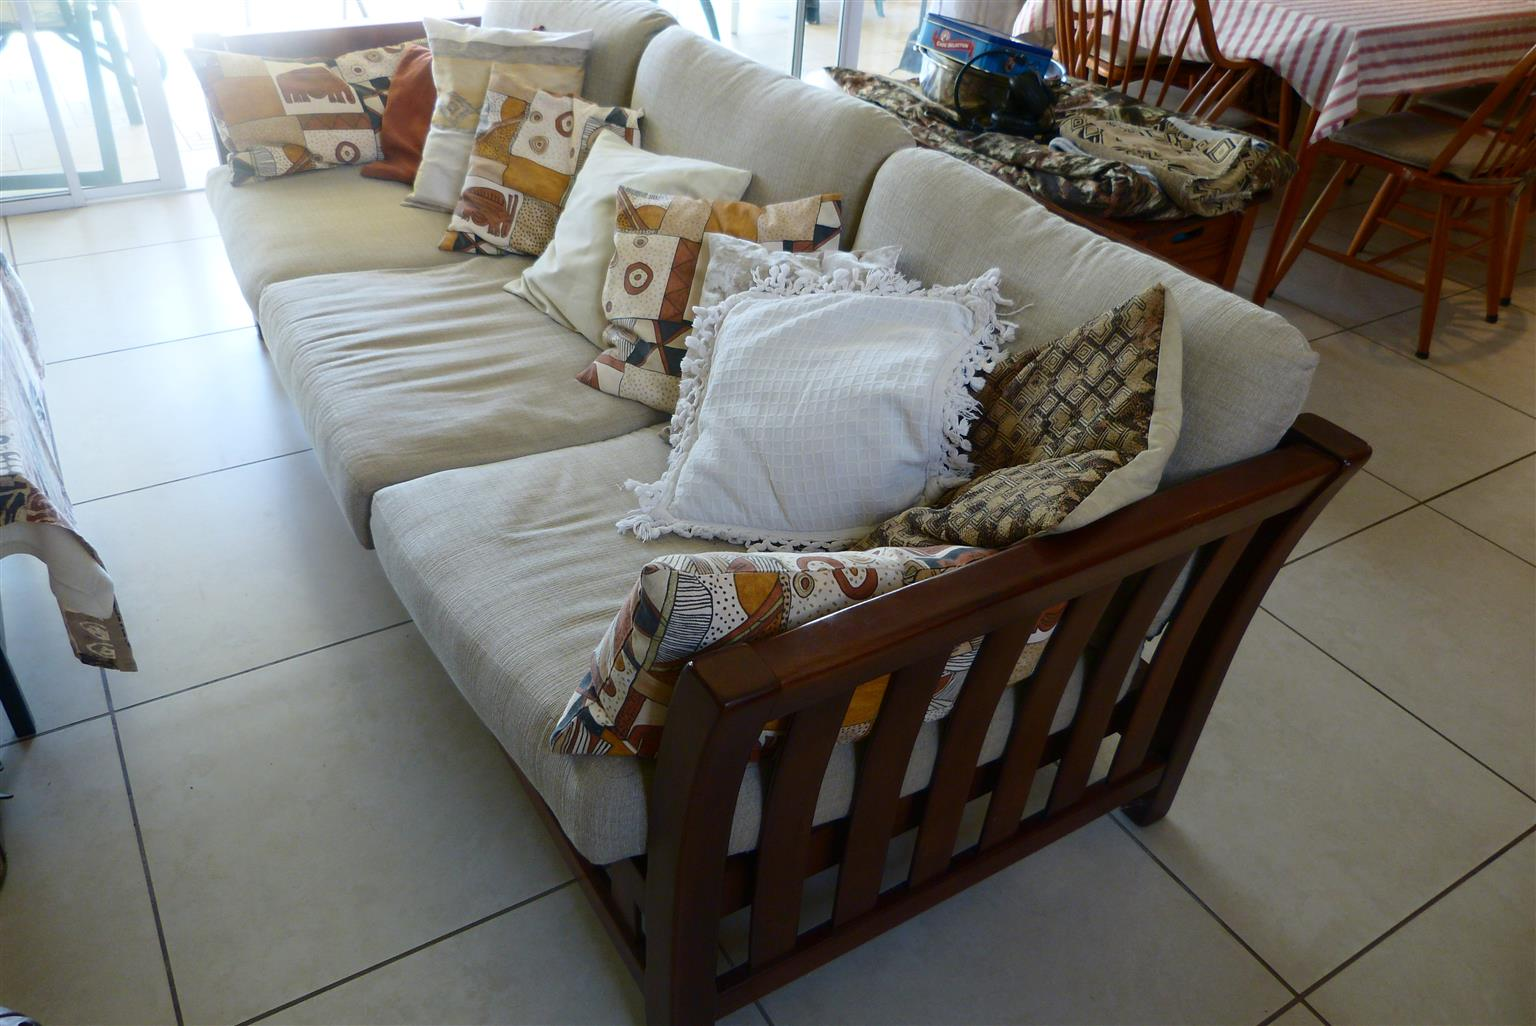 Wicker Couch with 2 coffee tables 5900.00, 1 shelf with extension 900.00